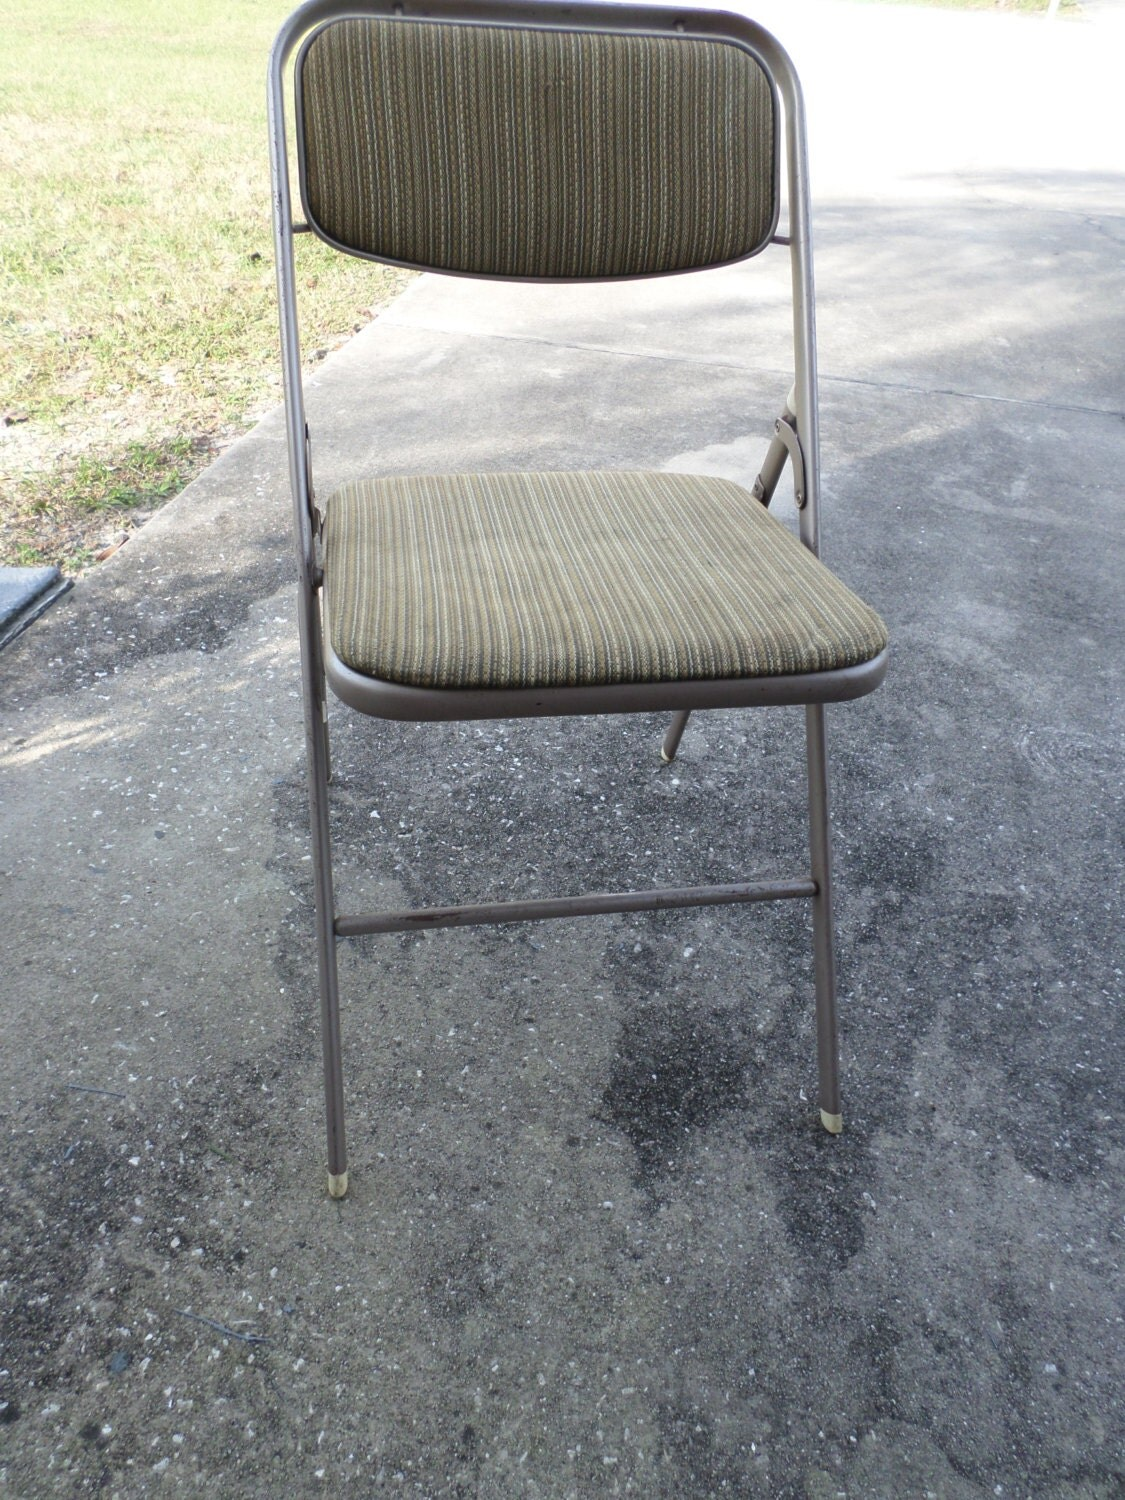 2 Vintage Samsonite Metal Folding Chairs